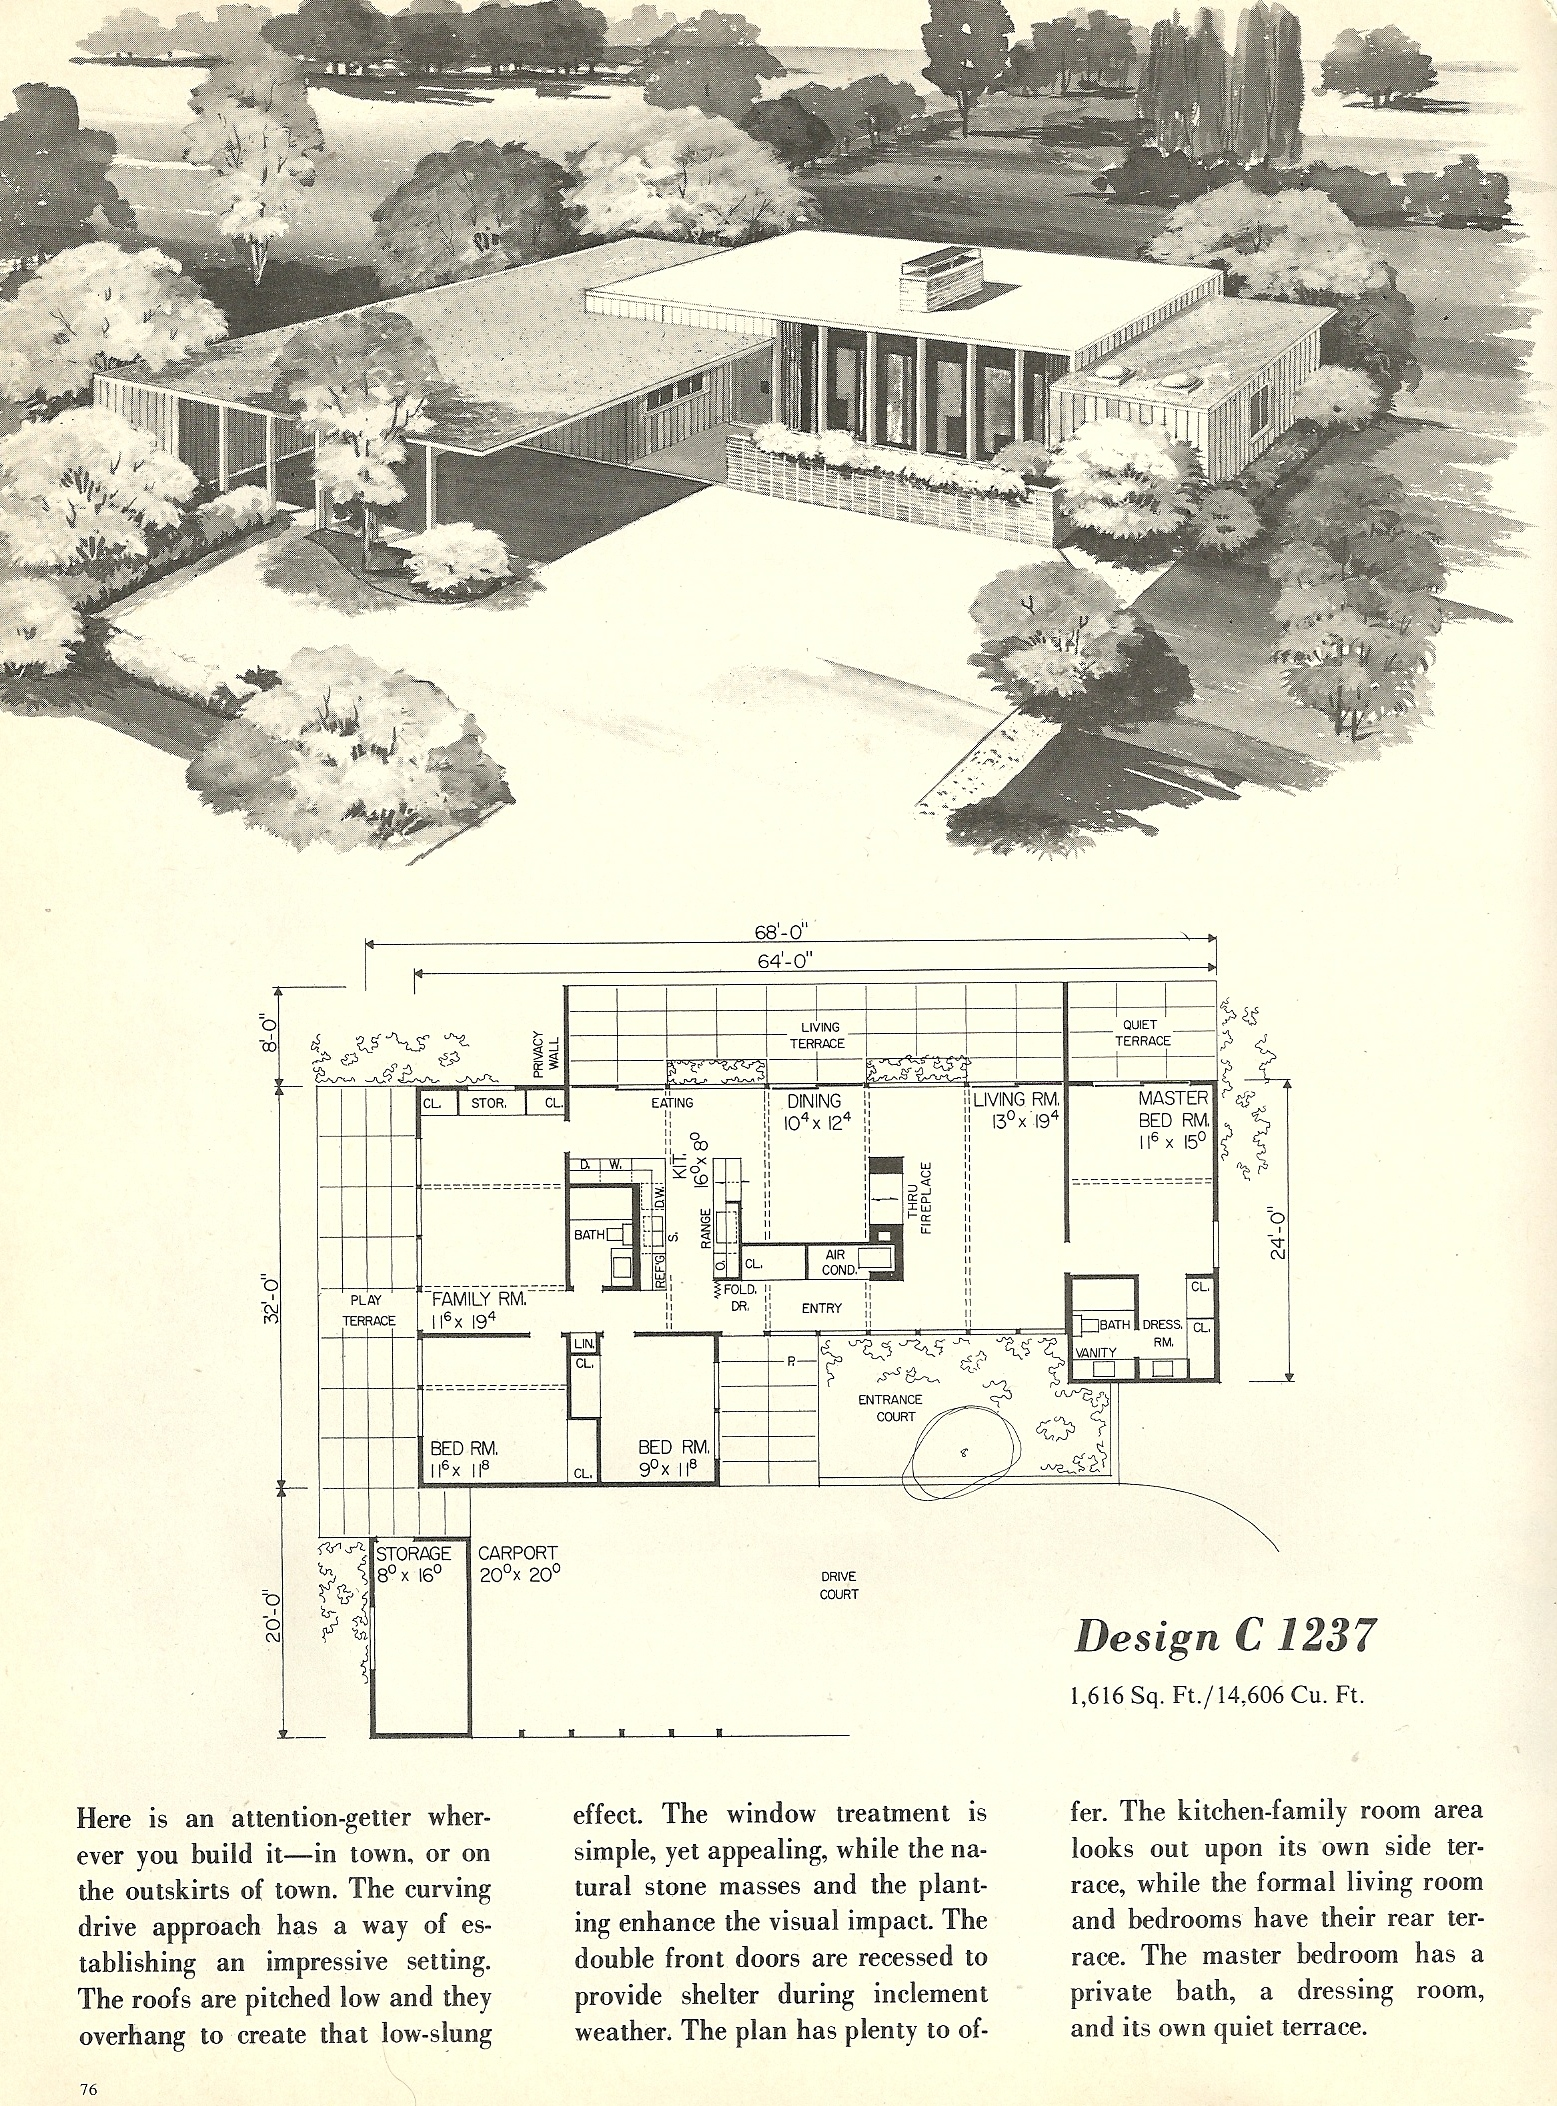 Vintage house plans 1237 antique alter ego Vintage home architecture